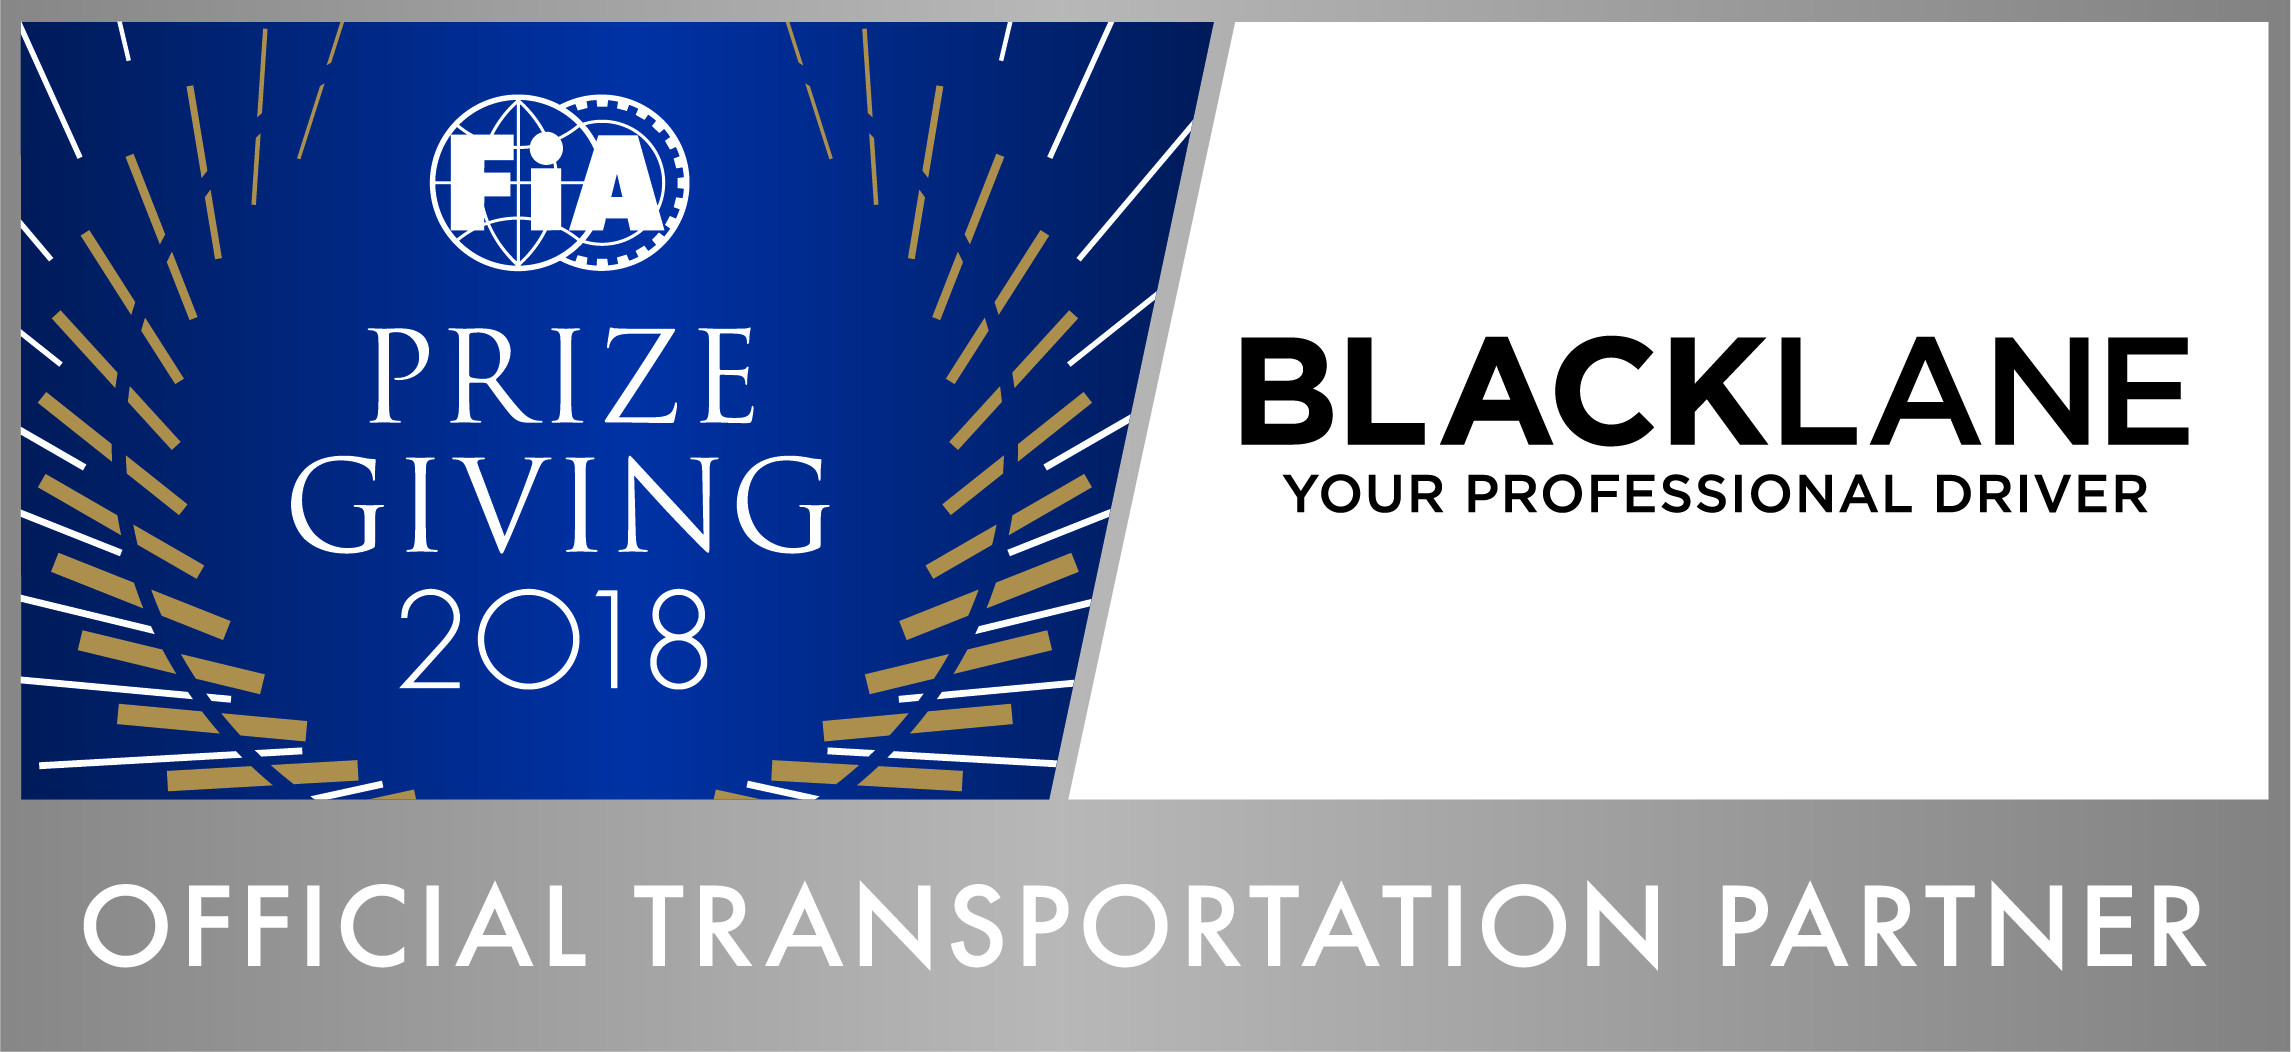 FIA Prize Giving 2018 Official Transportation Partner